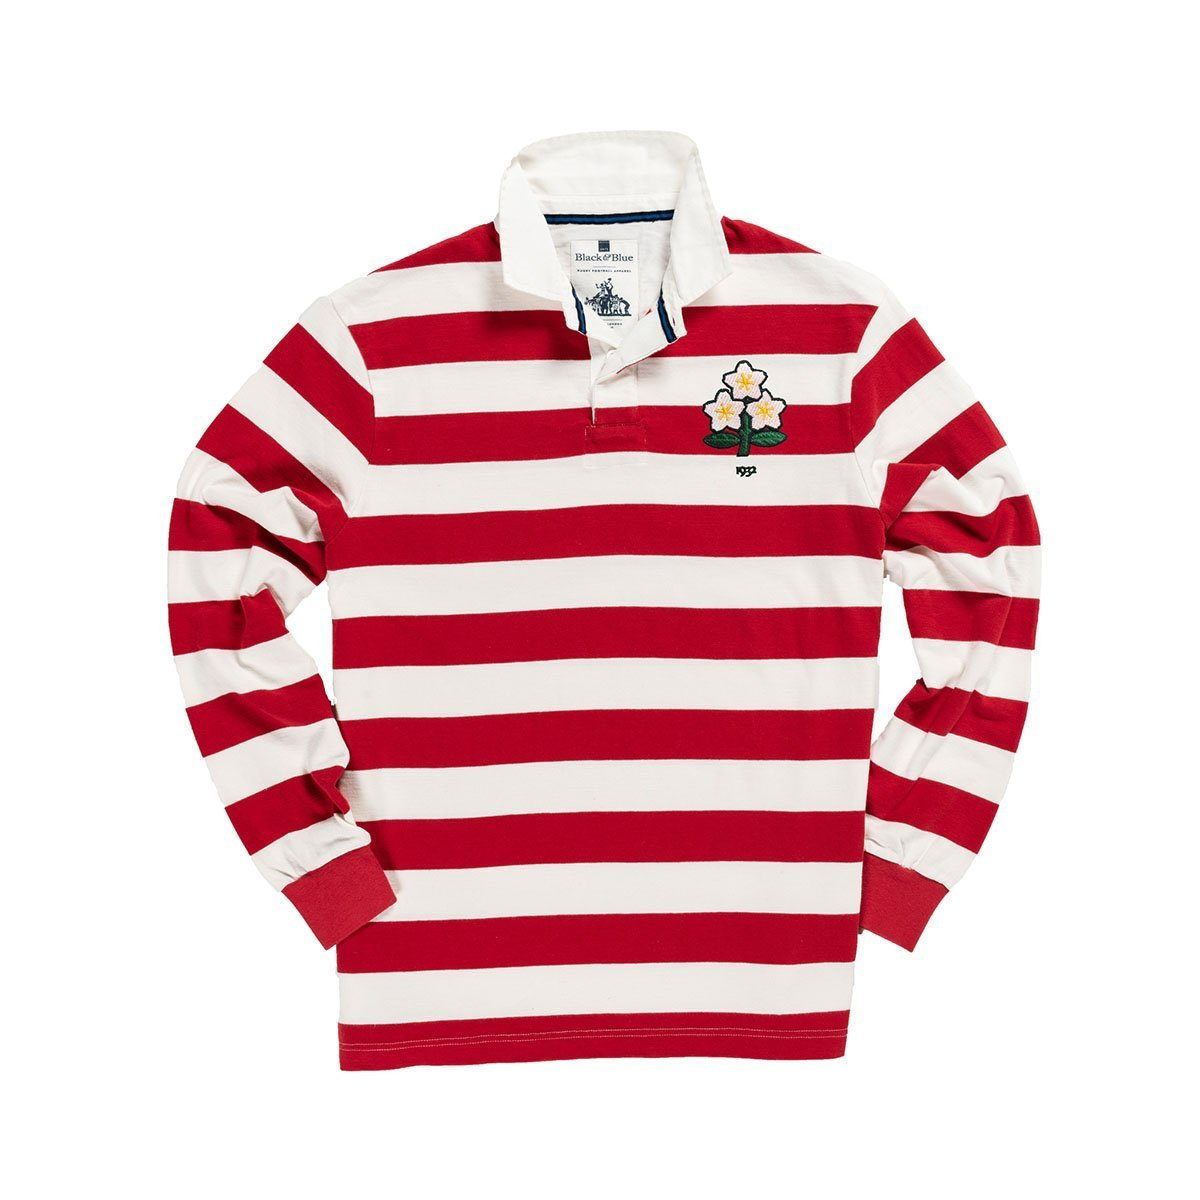 1IN/JAXS, Black & Blue 1871, Japan 1932 Rugby Shirt, Red/White, Vintage, Classic Rugby Shirt